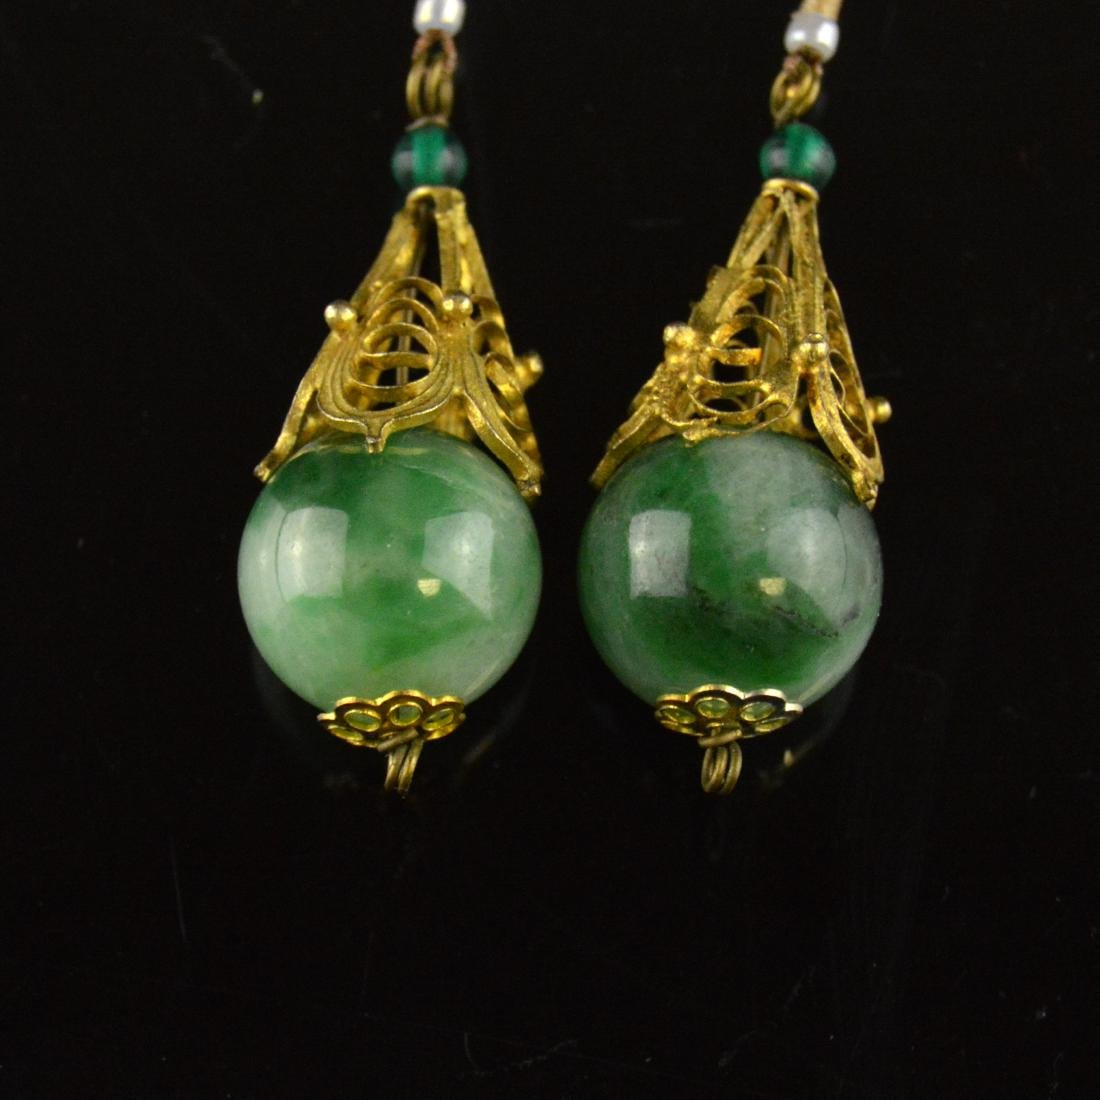 Old Jadeite Earring Pair - 2